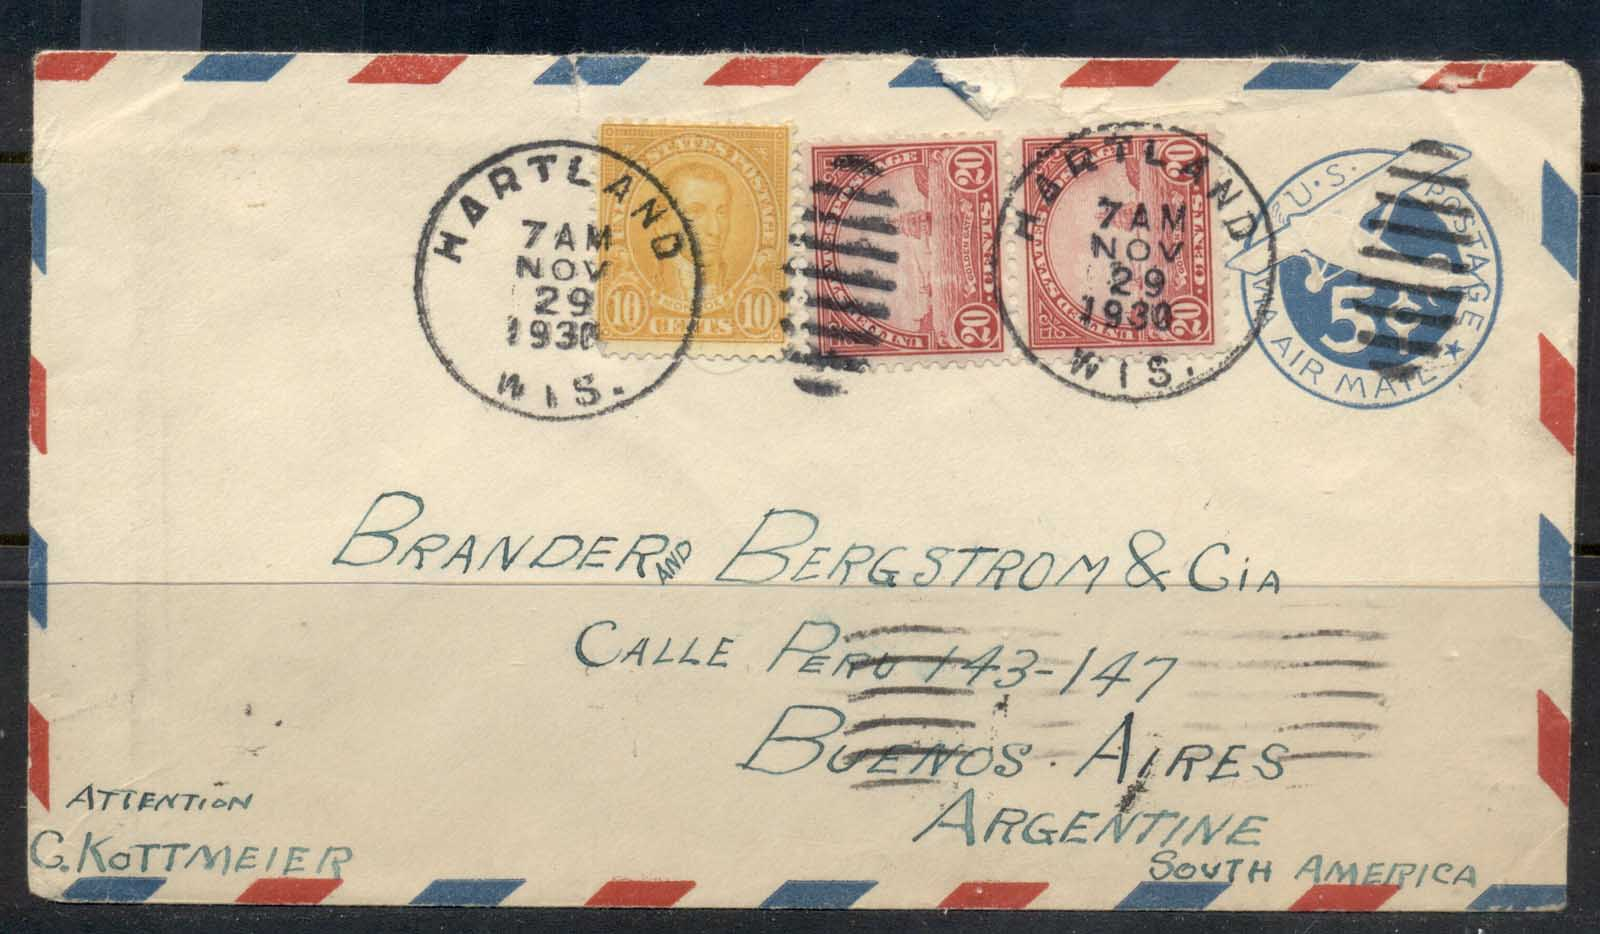 USA 1922-38 Fourth Bureau Golden Gate 20c pr uprated Airmail PSE Hartlend to Argentina cover